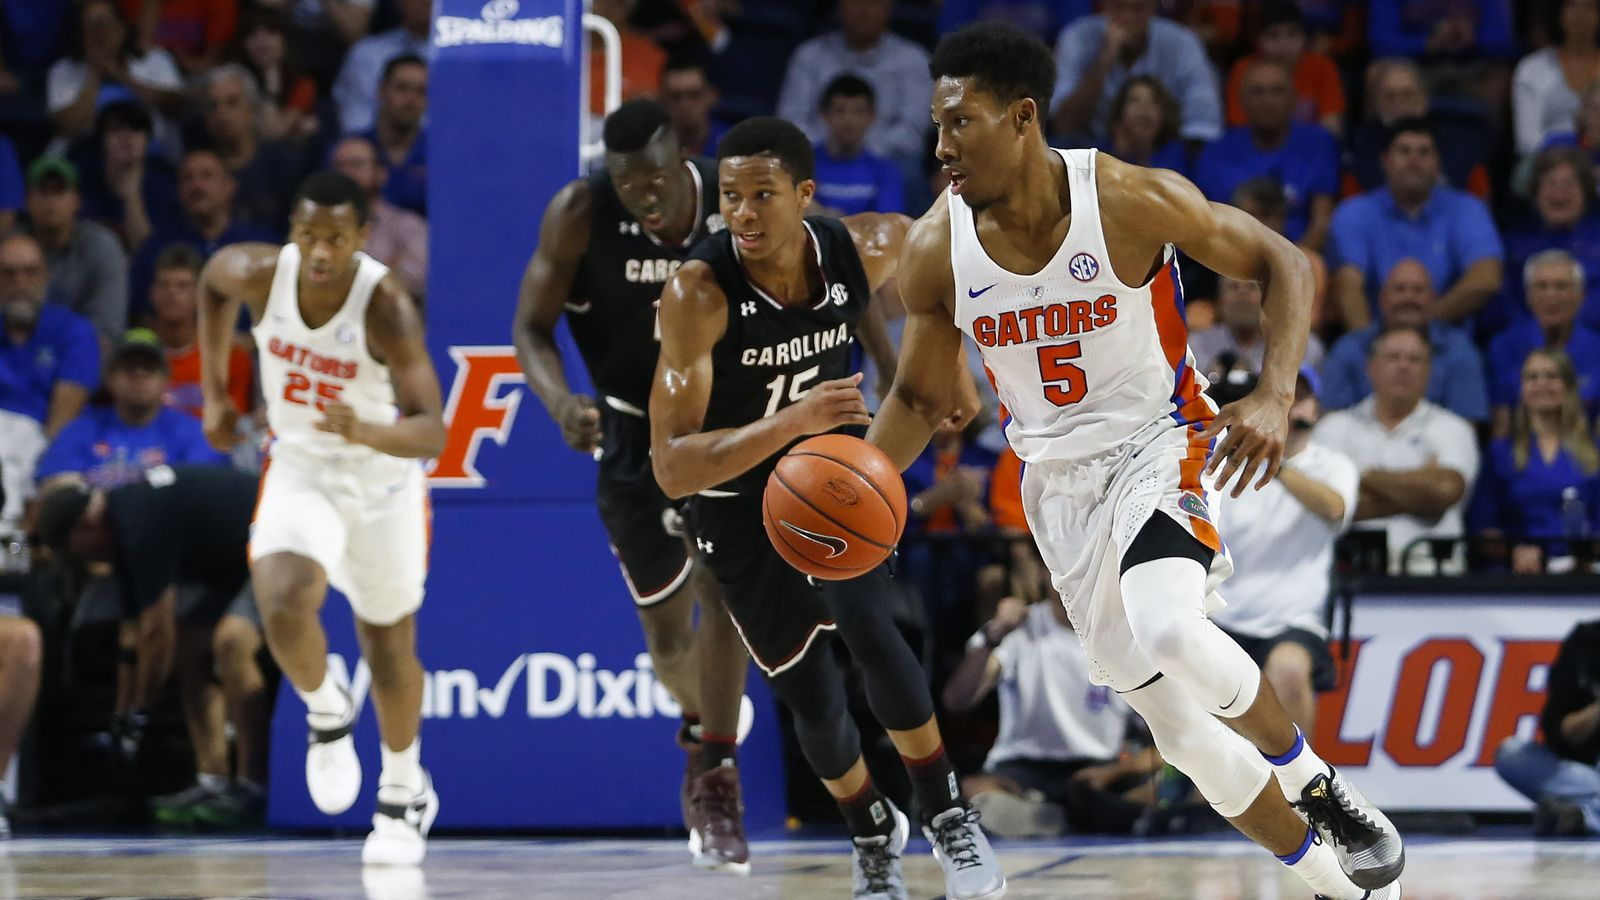 Florida vs South Carolina March Madness 2017 Predictions and Picks